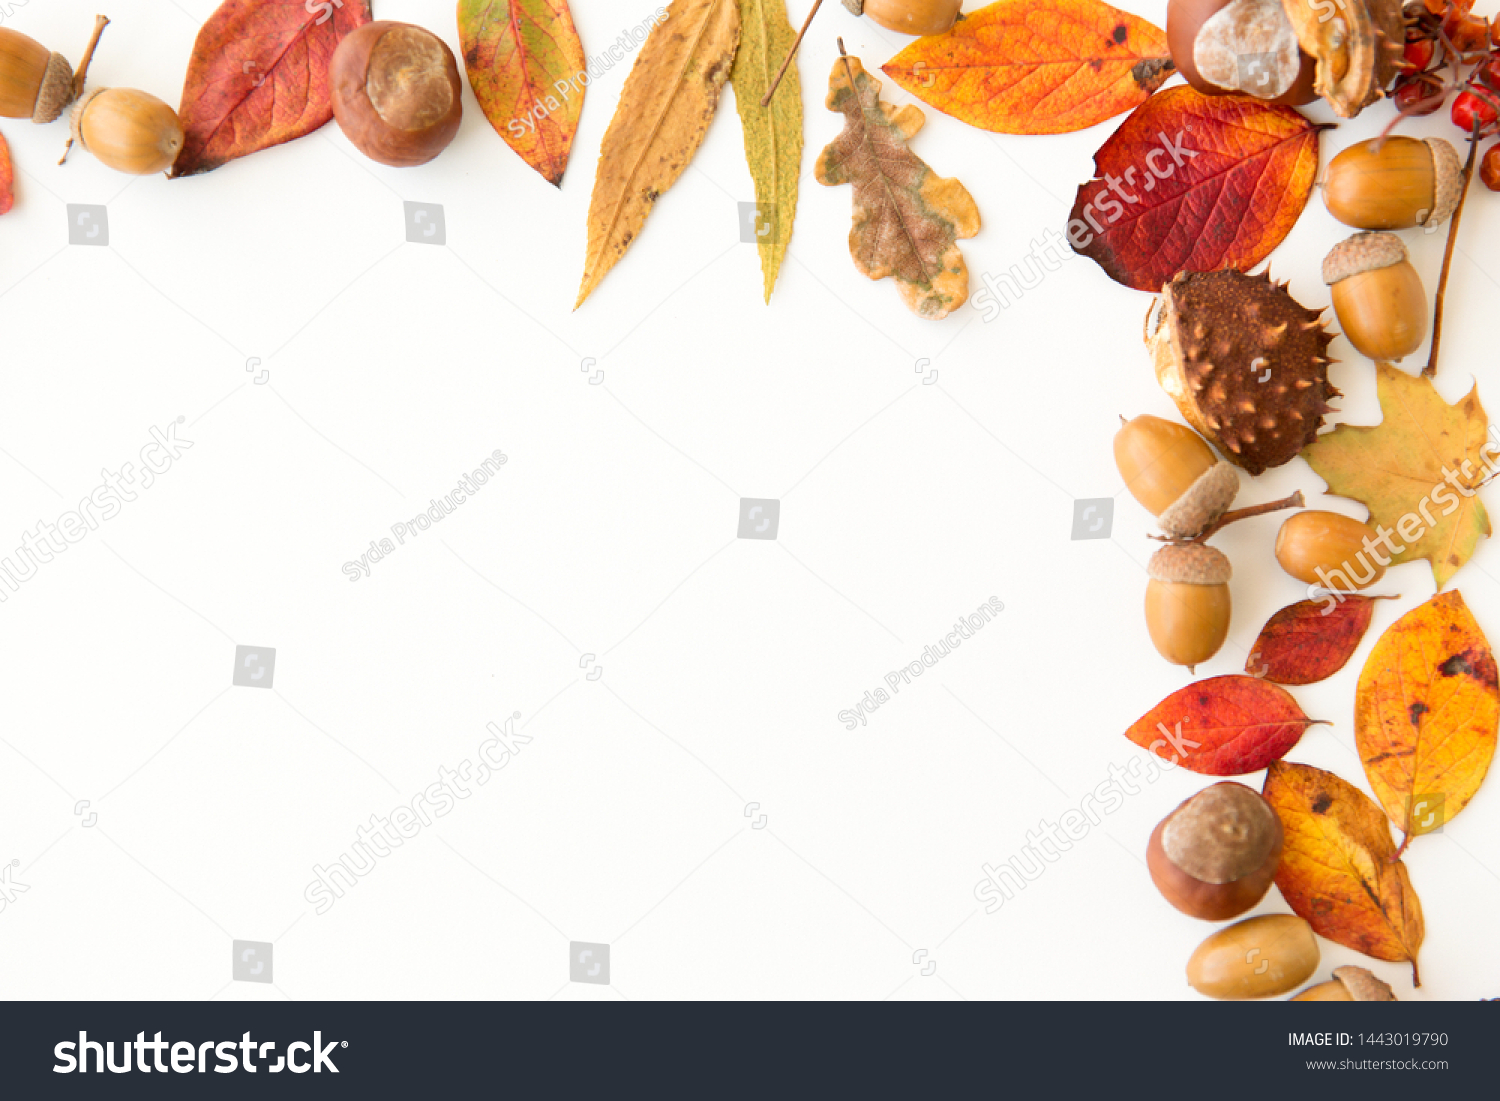 nature, season and botany concept - frame of different dry fallen autumn leaves, chestnuts, acorns and berries on white background #1443019790